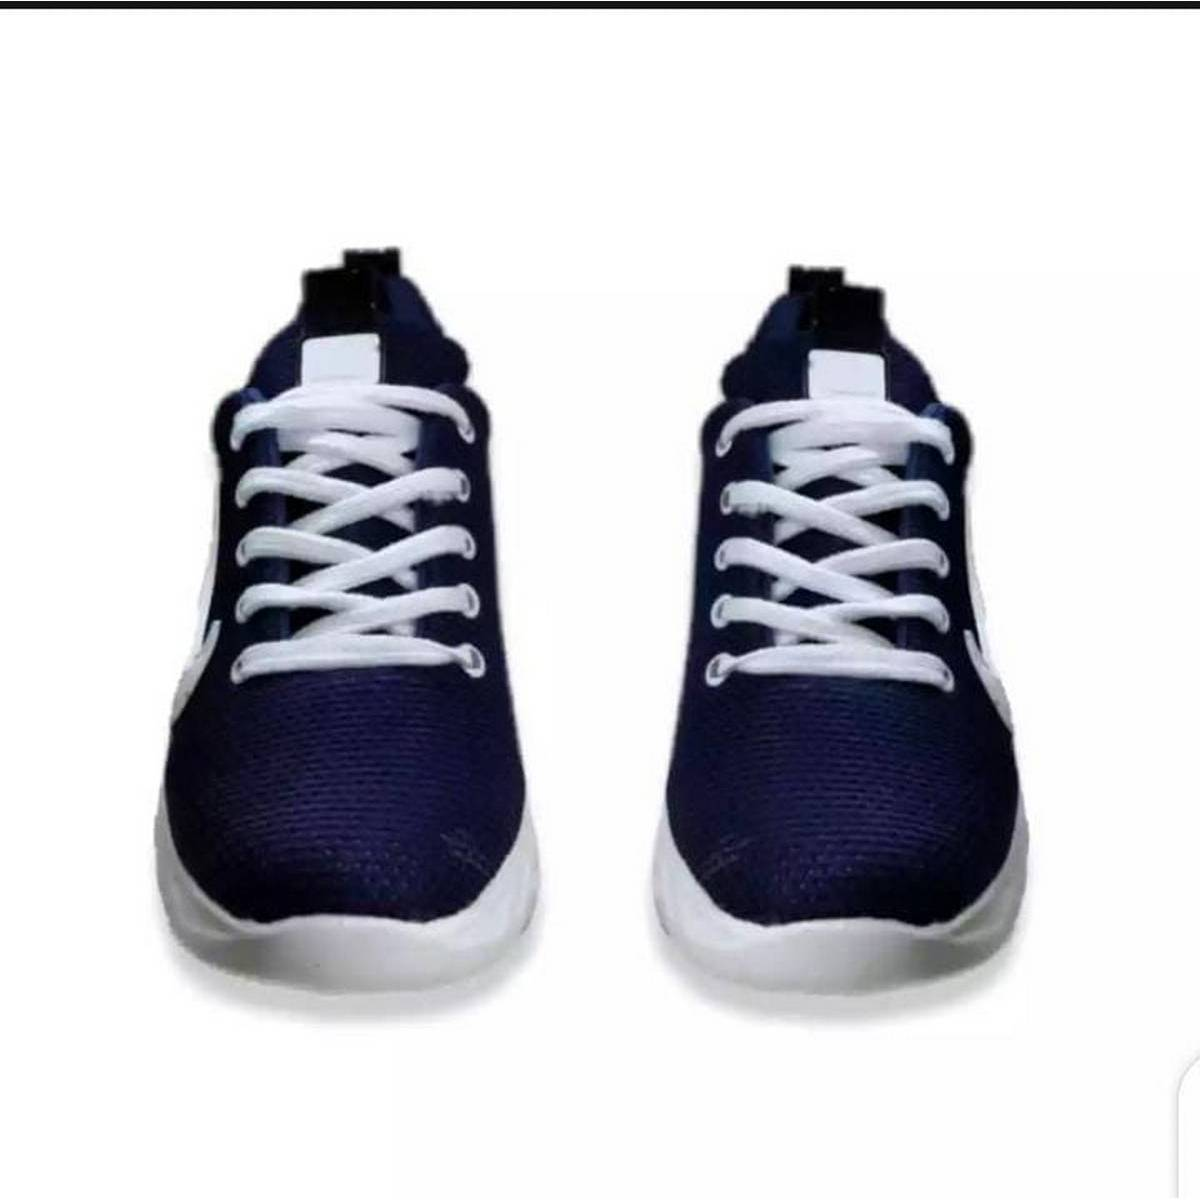 sale sale best comfortable new design running nd casual wear shoes for men only 750